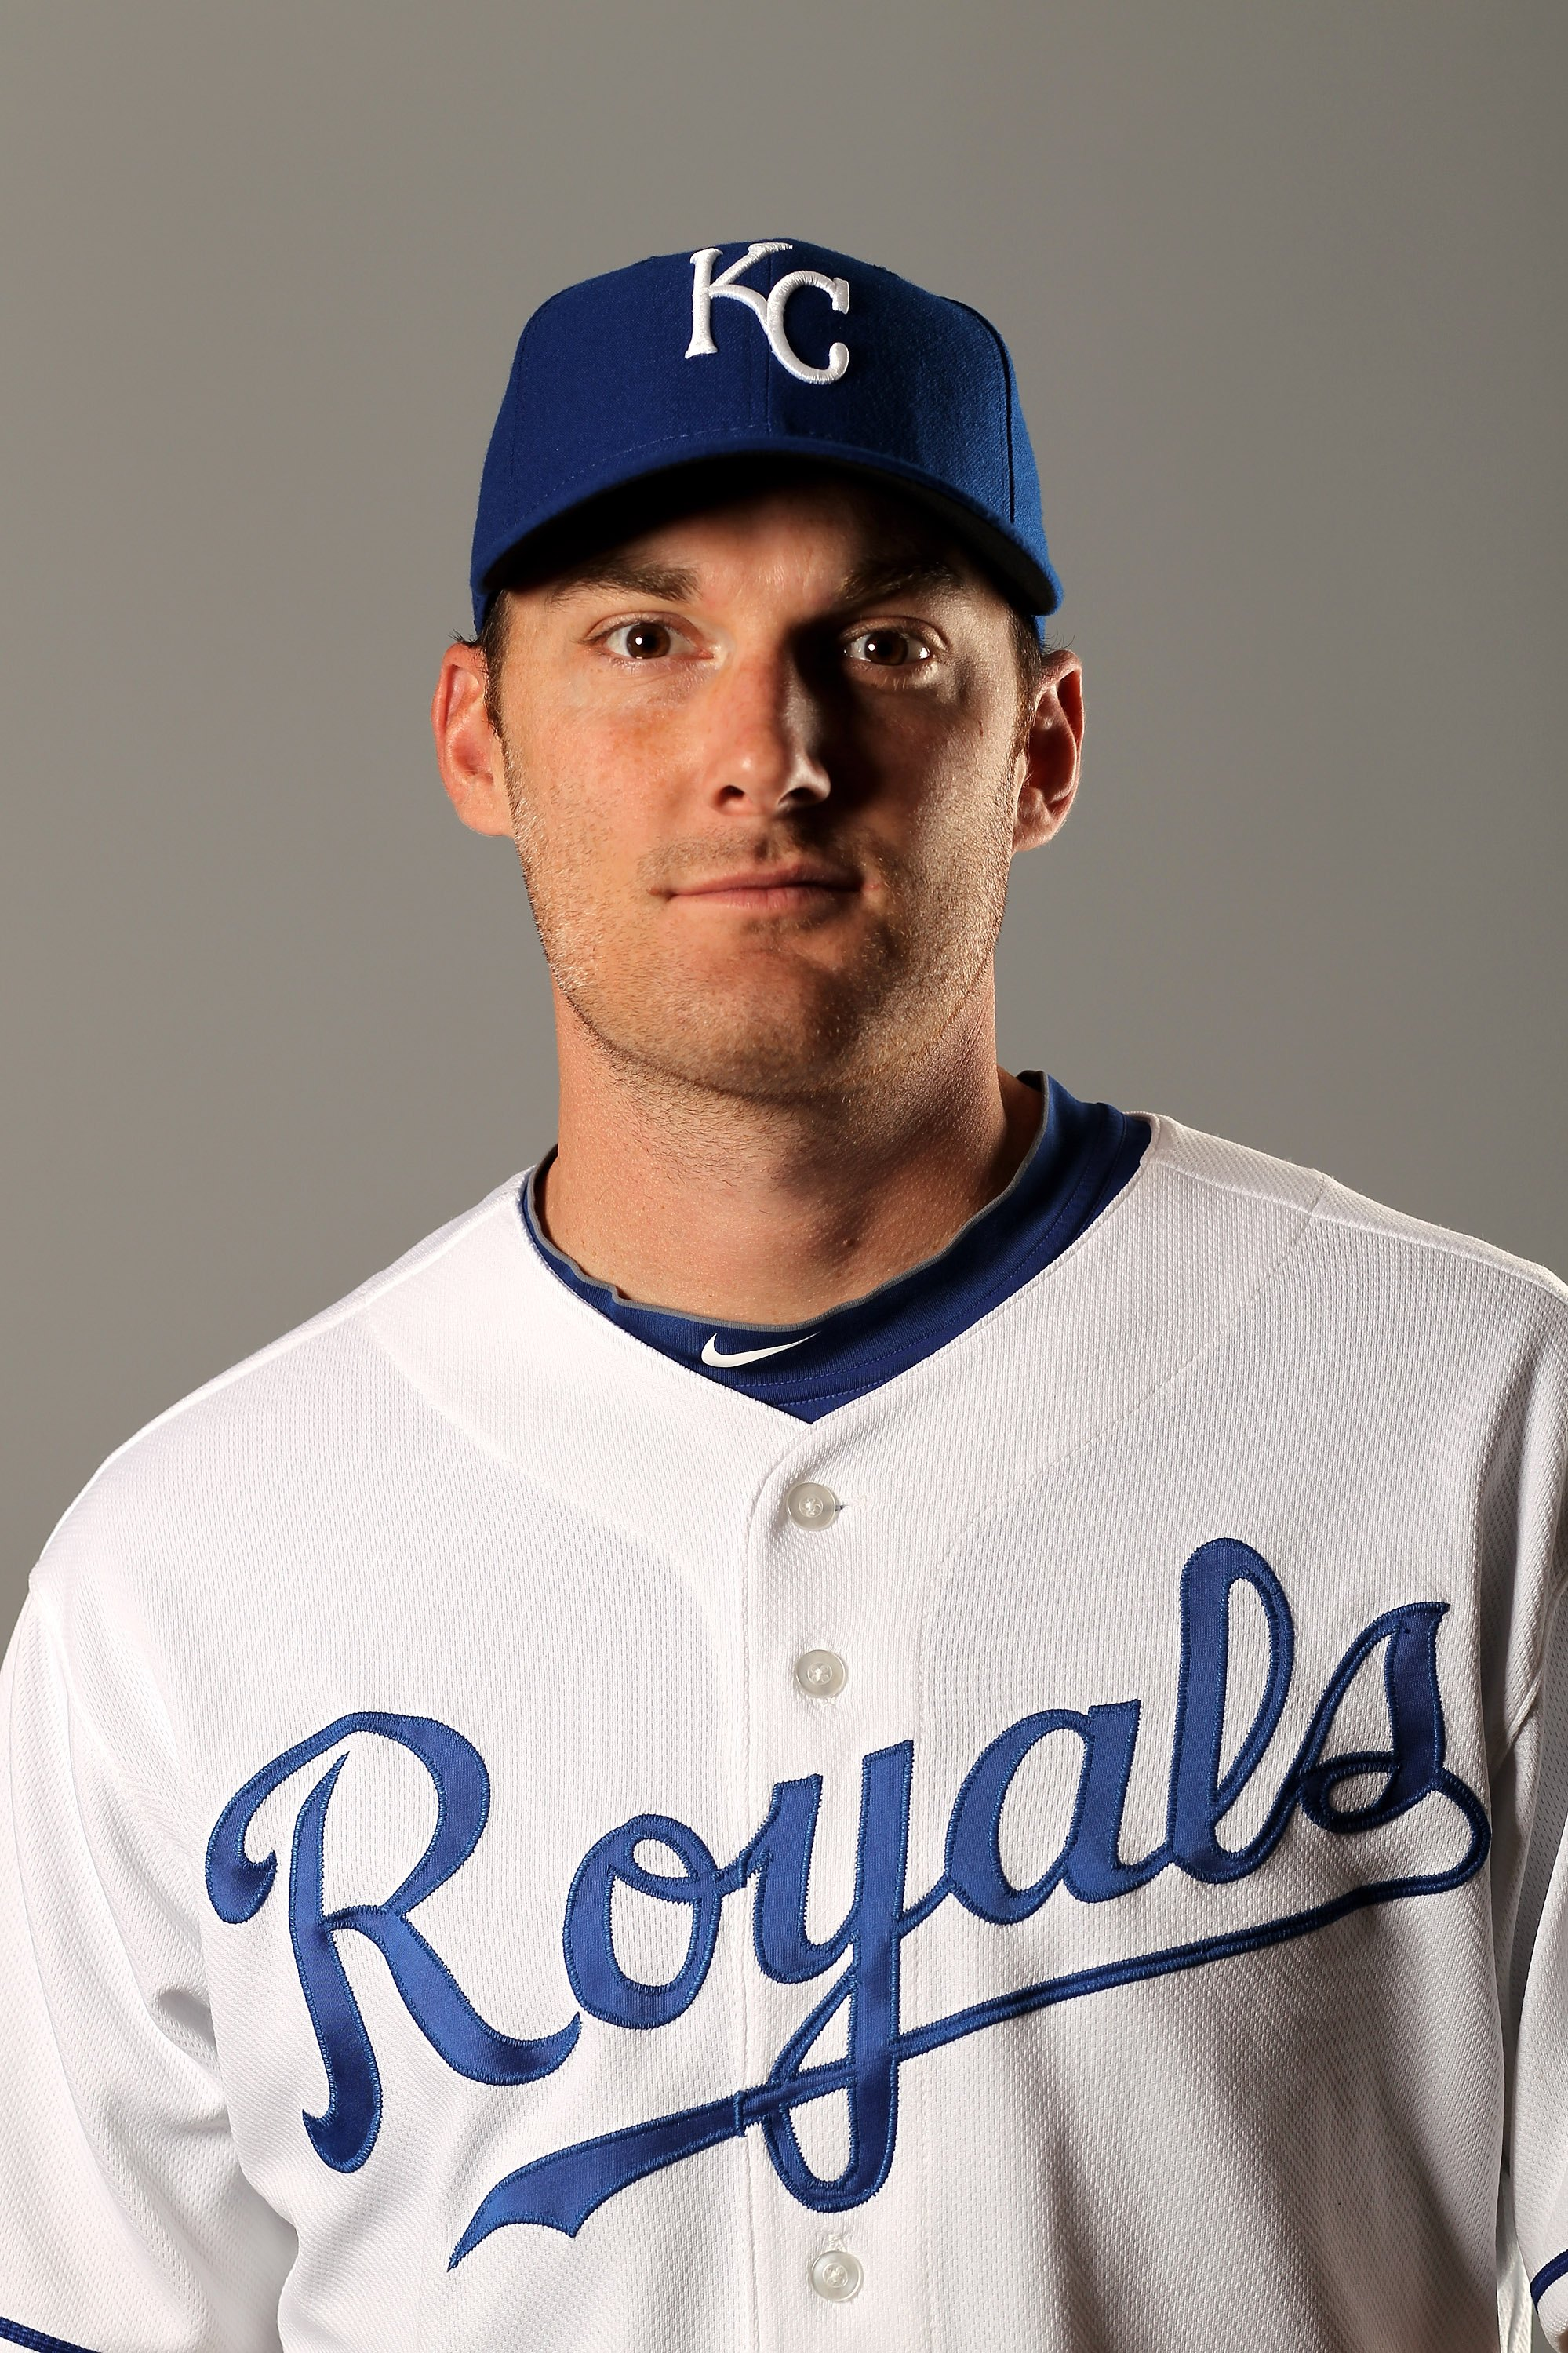 SURPRISE, AZ - FEBRUARY 26:  Philip Humber of the Kansas City Royals poses during photo media day at the Royals spring training complex on February 26, 2010 in Surprise, Arizona.  (Photo by Ezra Shaw/Getty Images)